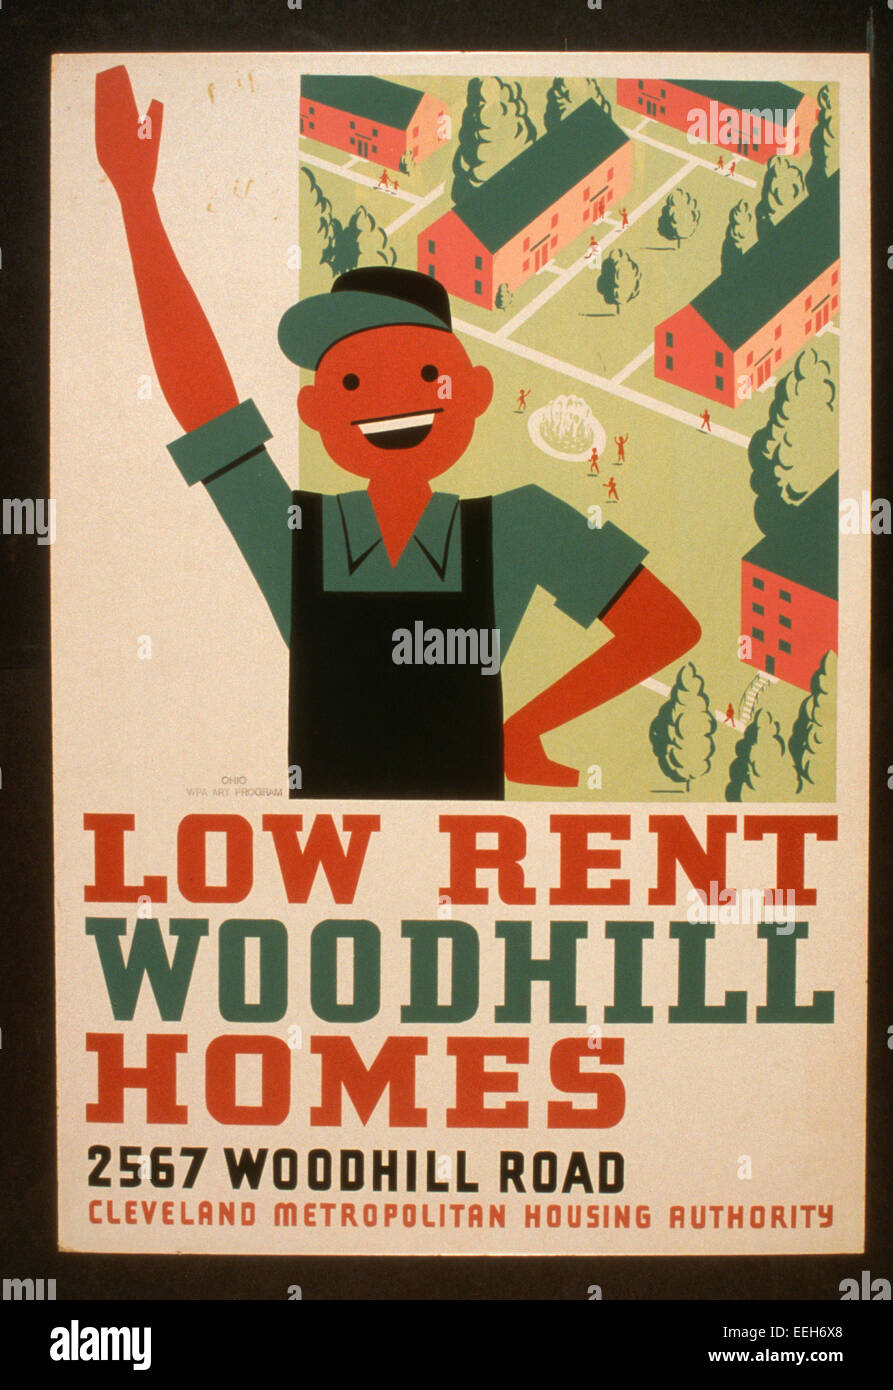 Low rent - Woodhill Homes, 2567 Woodhill Road - WPA Poster for Cleveland Metropolitan Housing Authority promoting - Stock Image